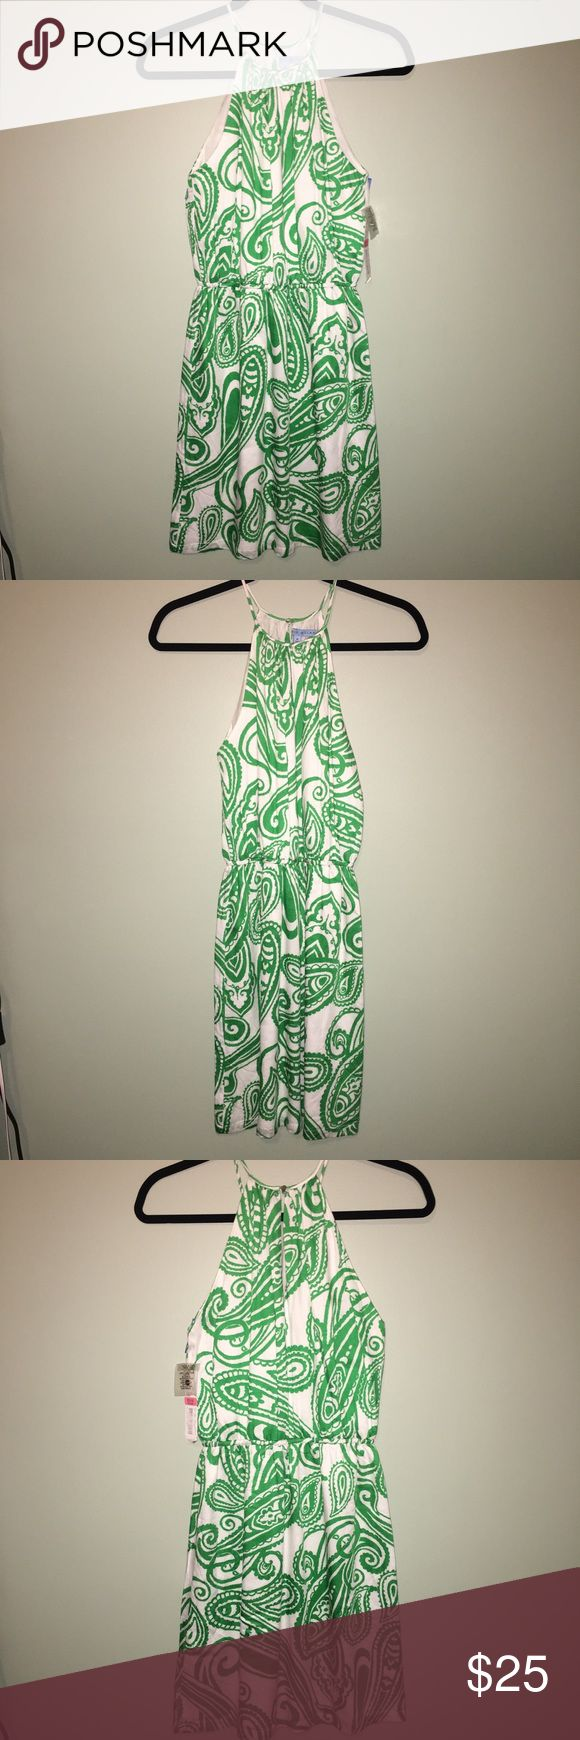 Antonio Melani  dress | size 0 NWT Antonio Melani dress size 0 nwt ANTONIO MELANI Dresses